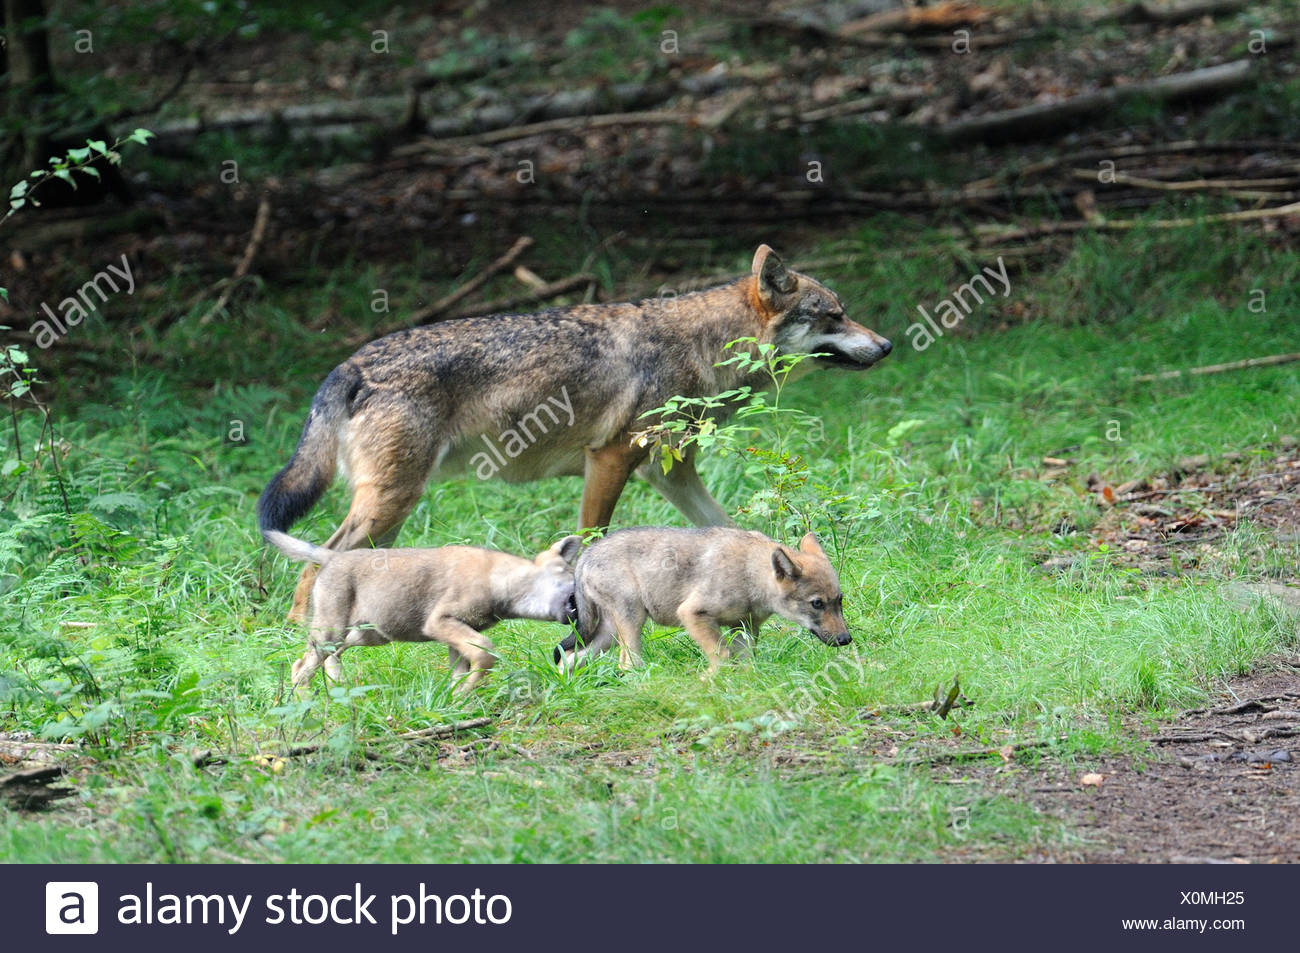 European grey wolf adult with pups aged 2 months old Canis lupus captive, Bayerischerwald National Park, Germany - Stock Image